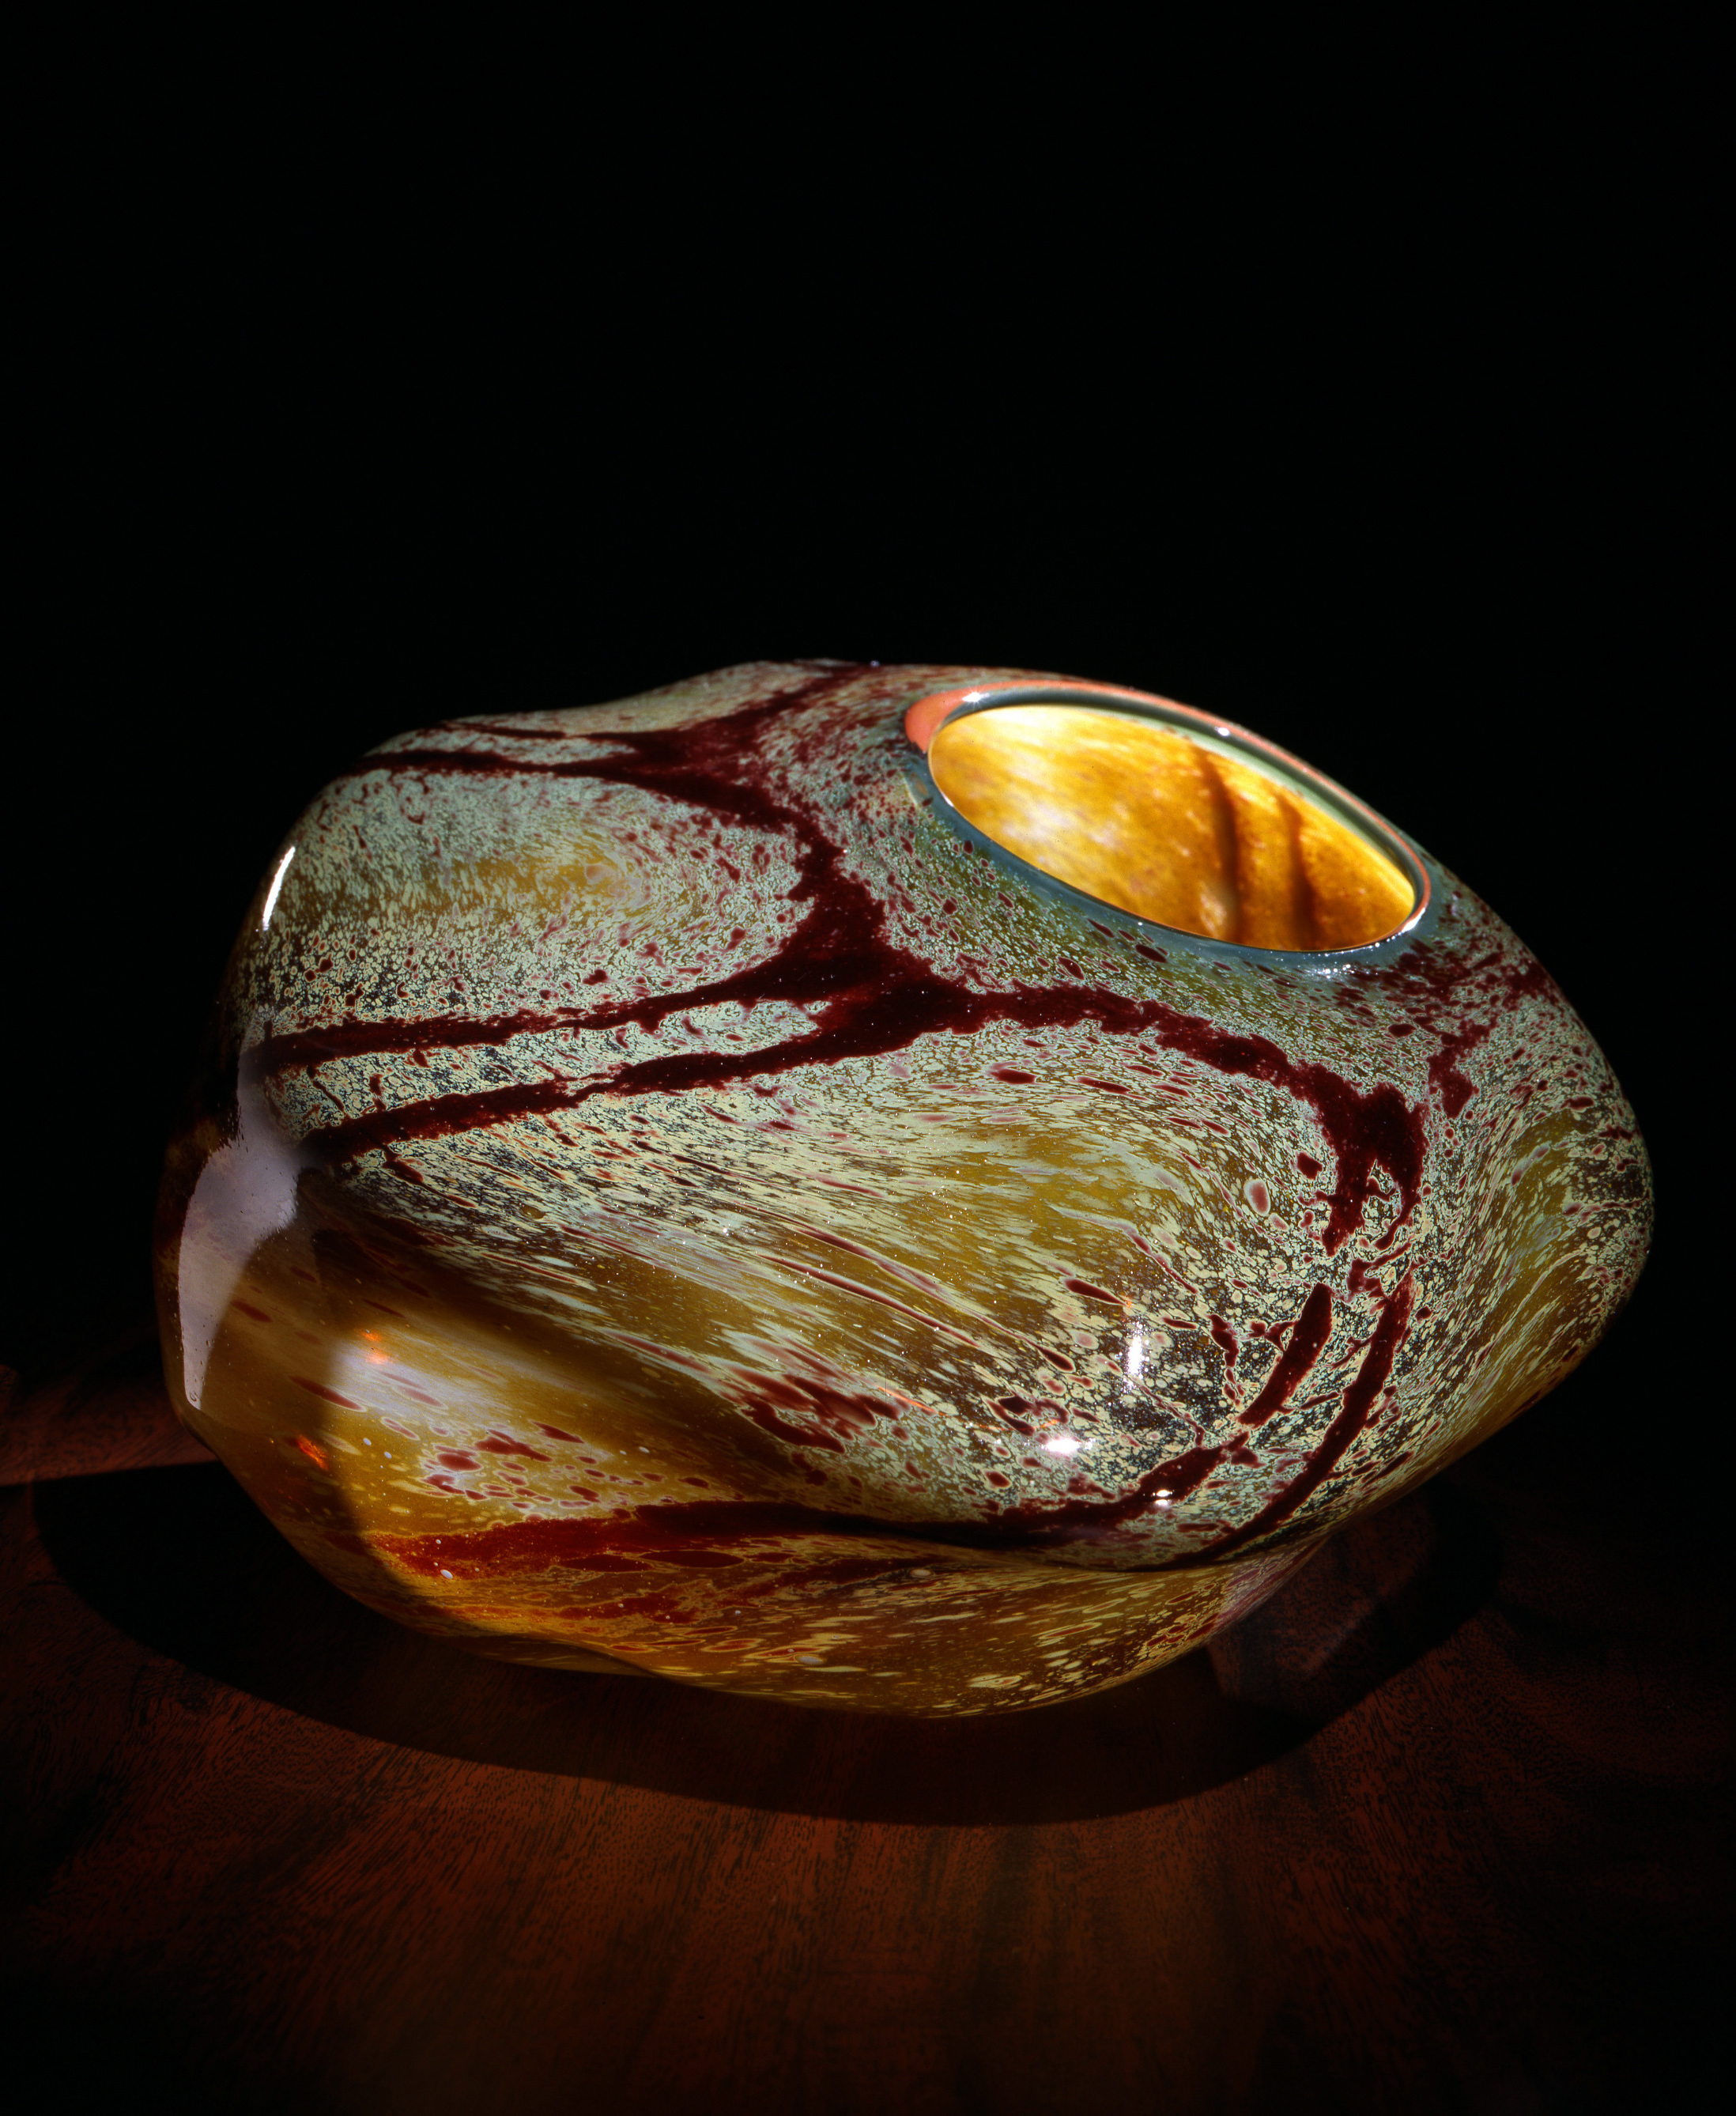 Dale Chihuly, Italian Ochre Macchia with Apricot Lip Wrap (1981, glass, 6 x 8 x 8inches), DC.107